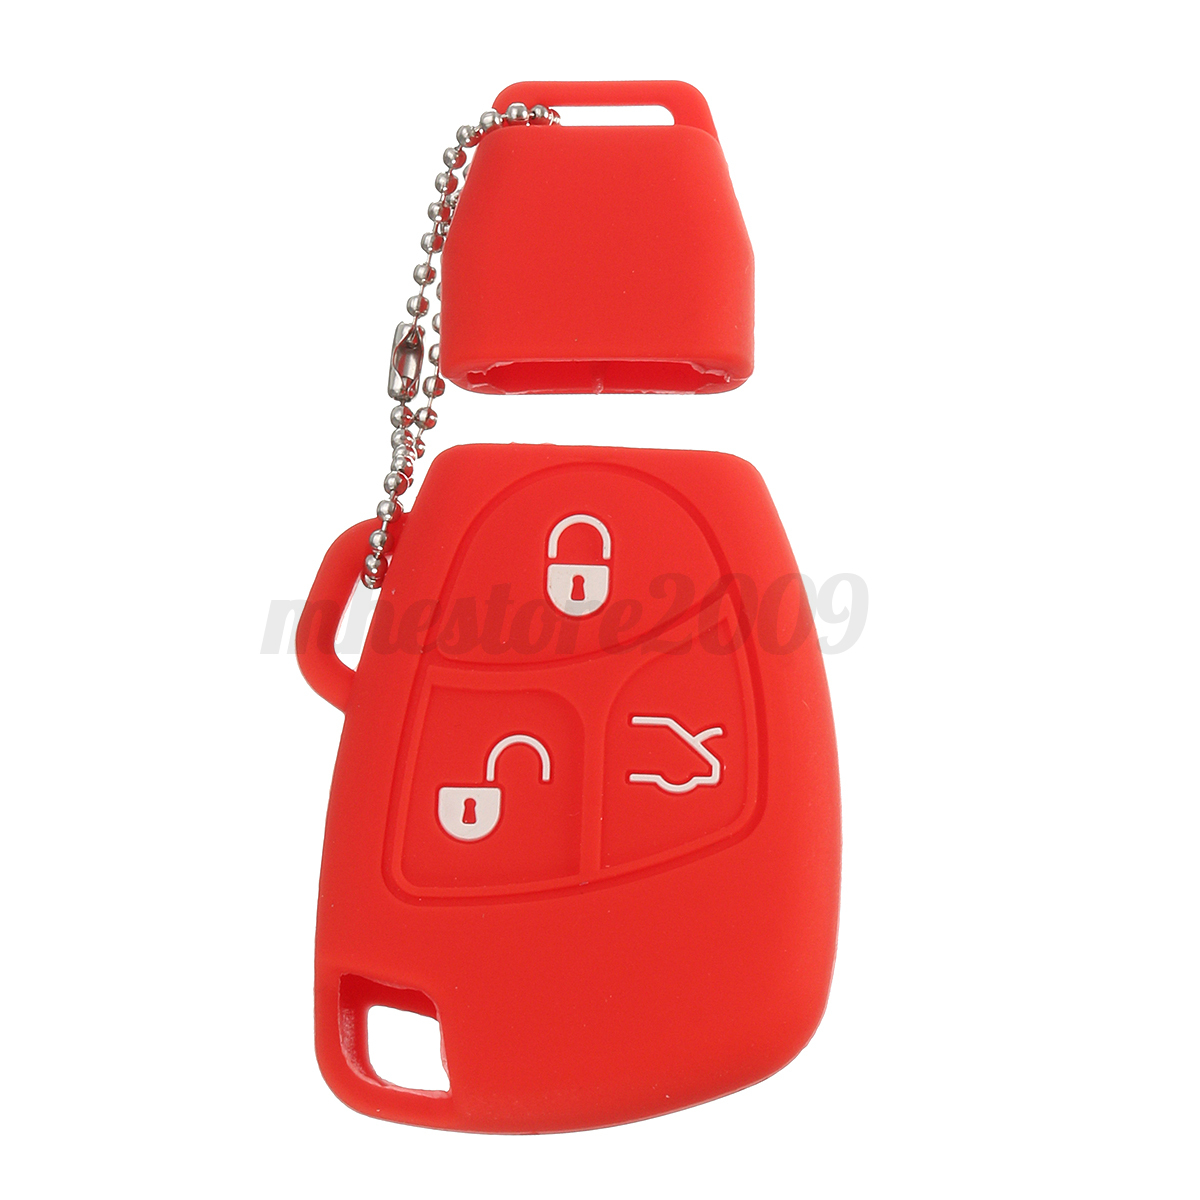 Silicone-3-Buttons-Remote-Key-Fob-Case-Shell-Cover-Holders-For-Mercedes-Benz miniature 15